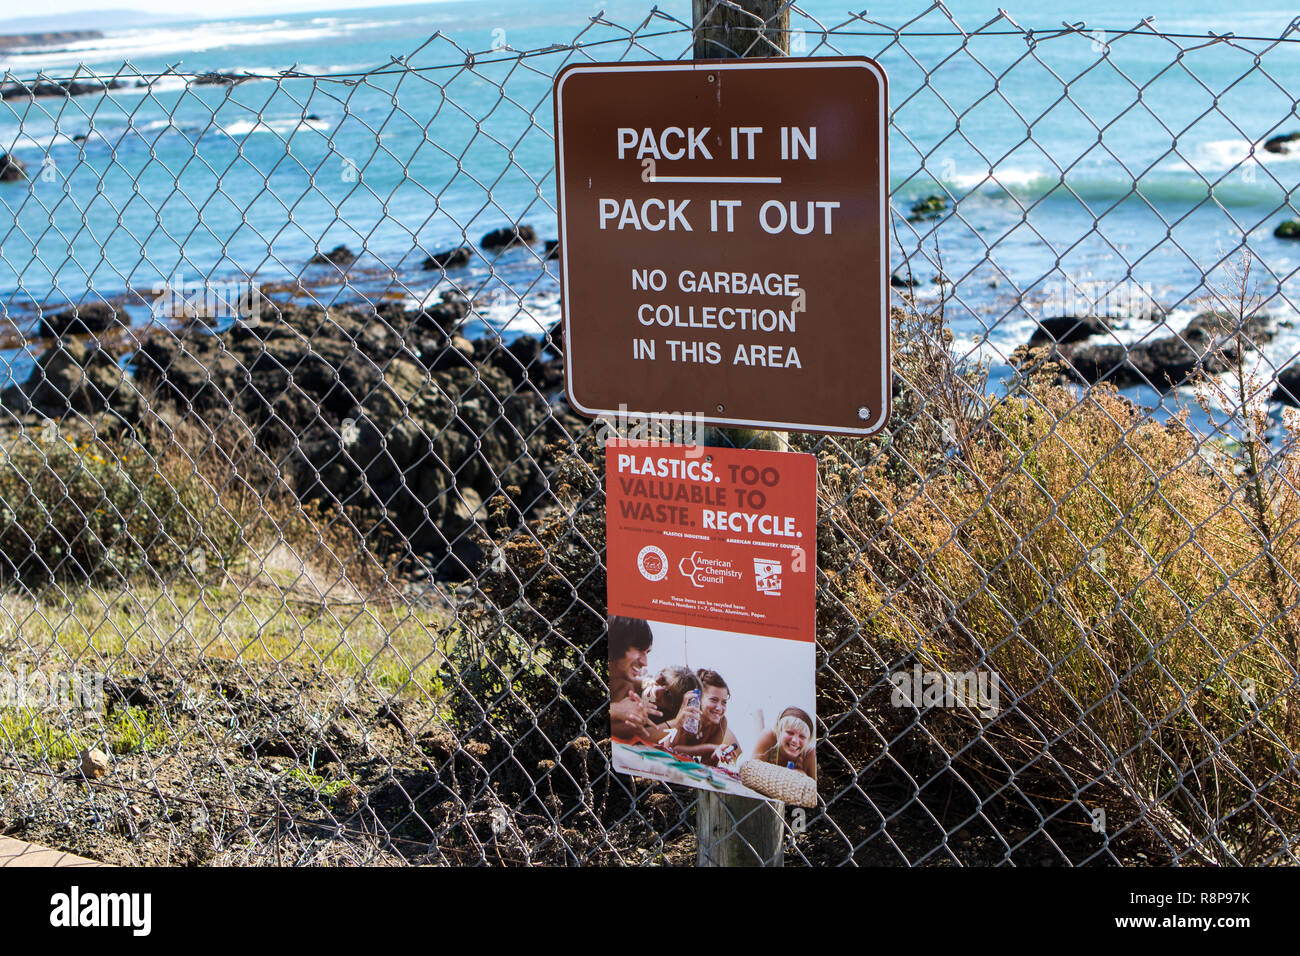 pack it in pack it out sign above a recycle plastic sign in a area along a clifftop with the ocean in the background at San Simeon, California; USA - Stock Image